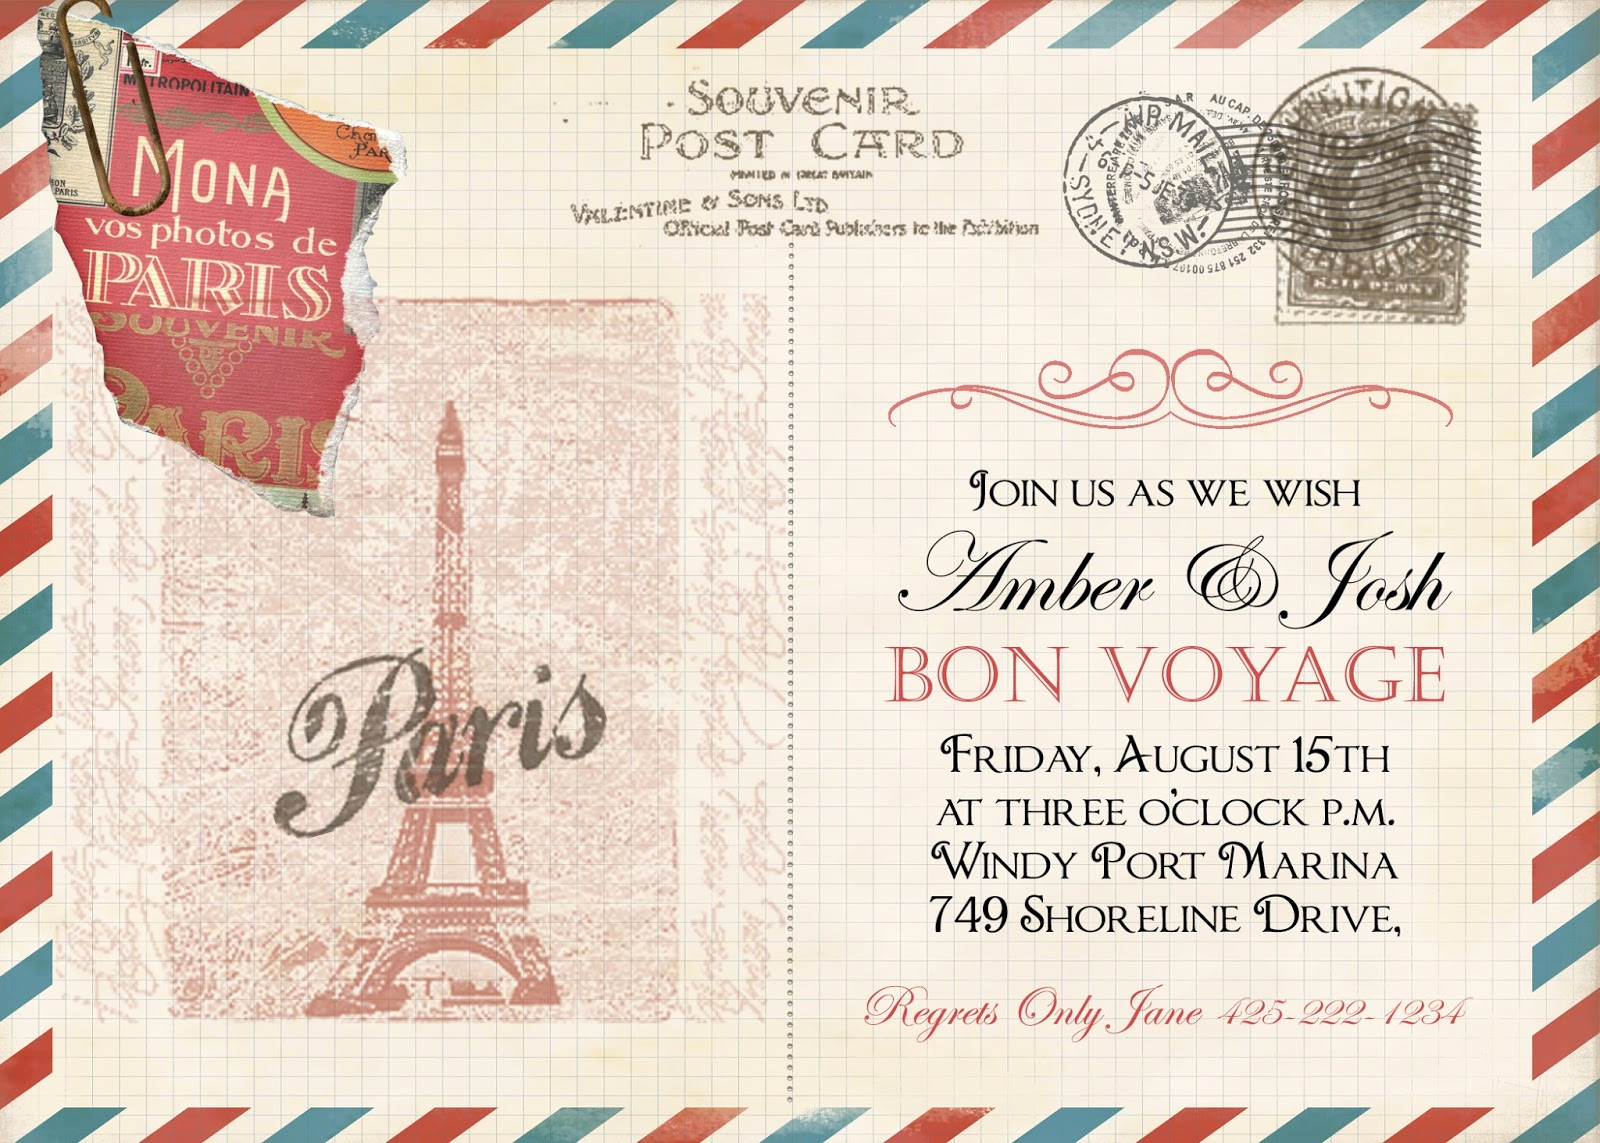 Bon Voyage Party Invitation Unique Sugar and Spice Invitations Bon Voyage Vintage Post Card